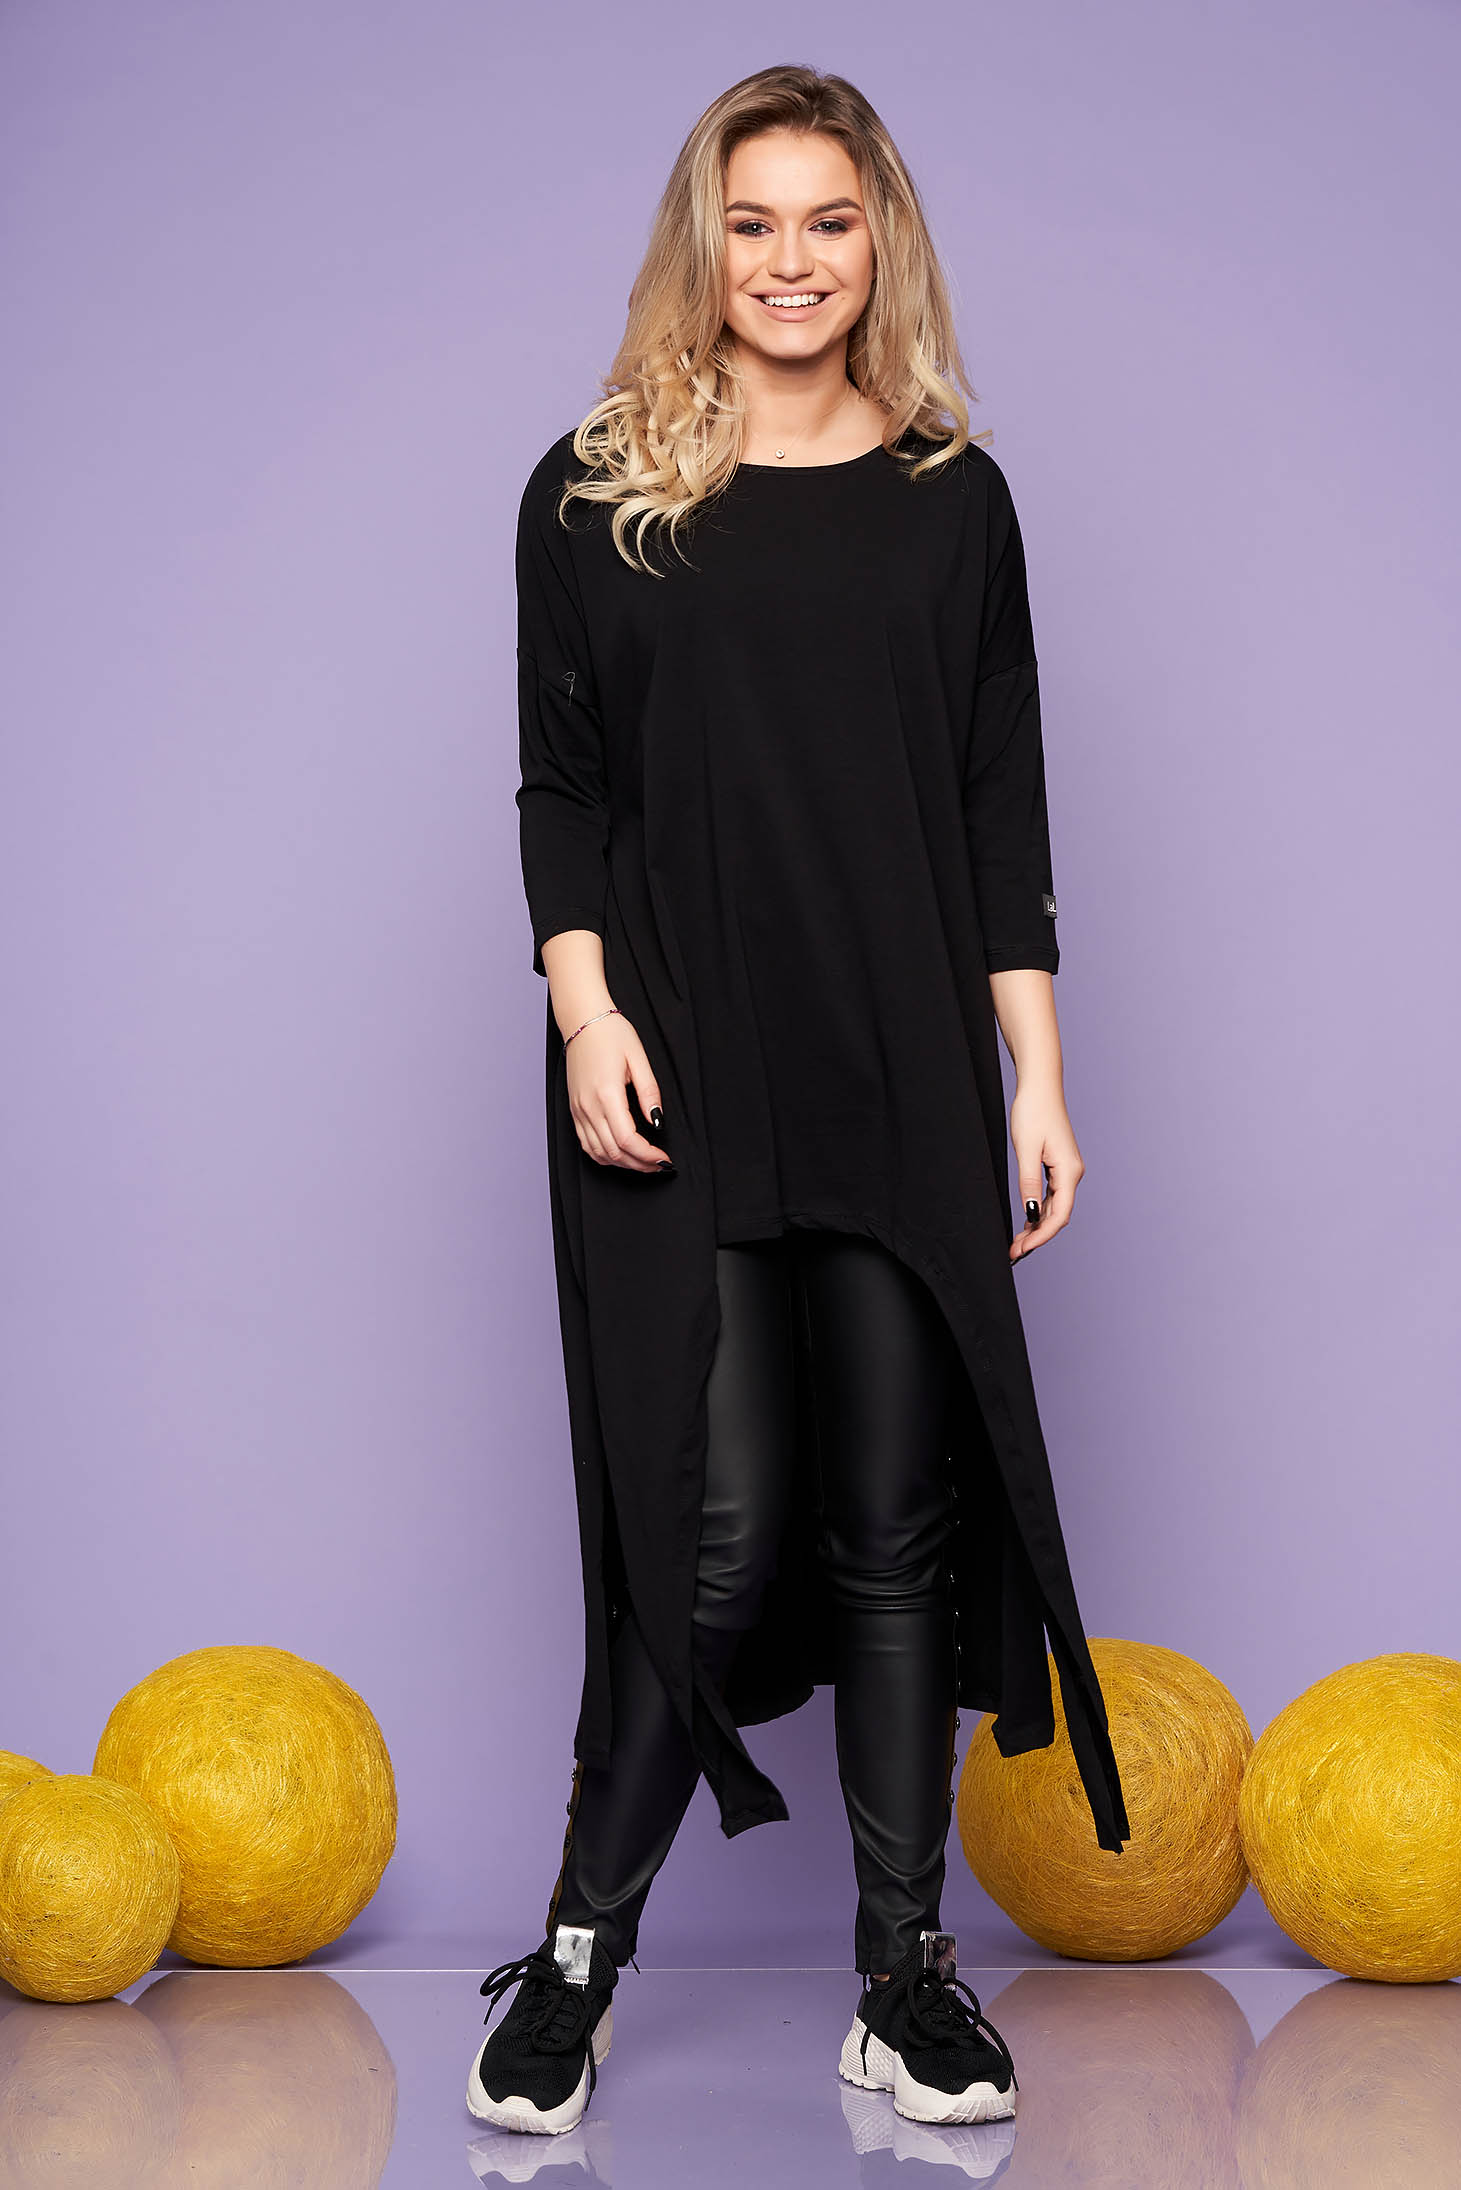 Black dress casual long cotton flared long sleeved neckline